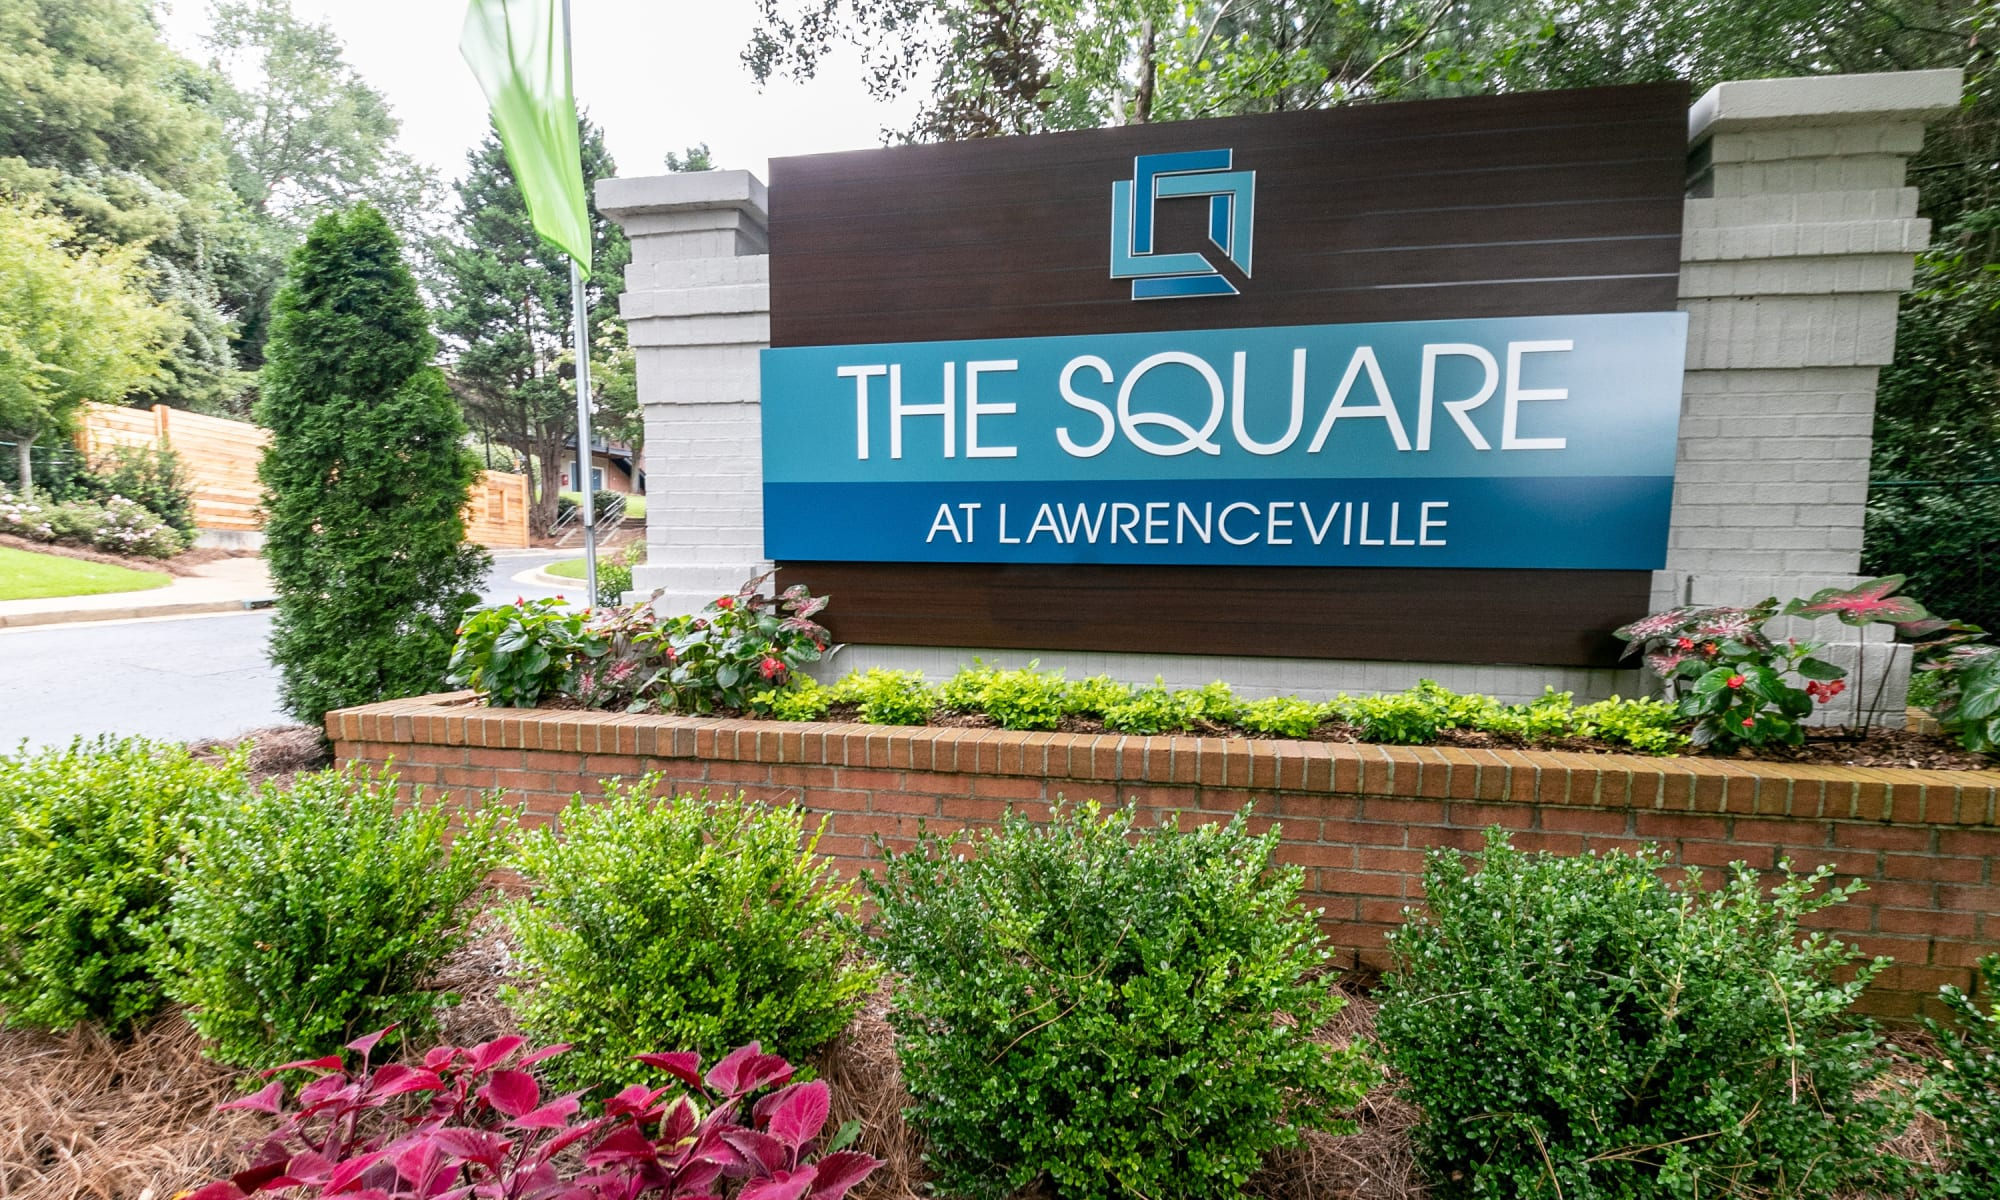 Apartment homes at The Square at Lawrenceville in Lawrenceville, Georgia